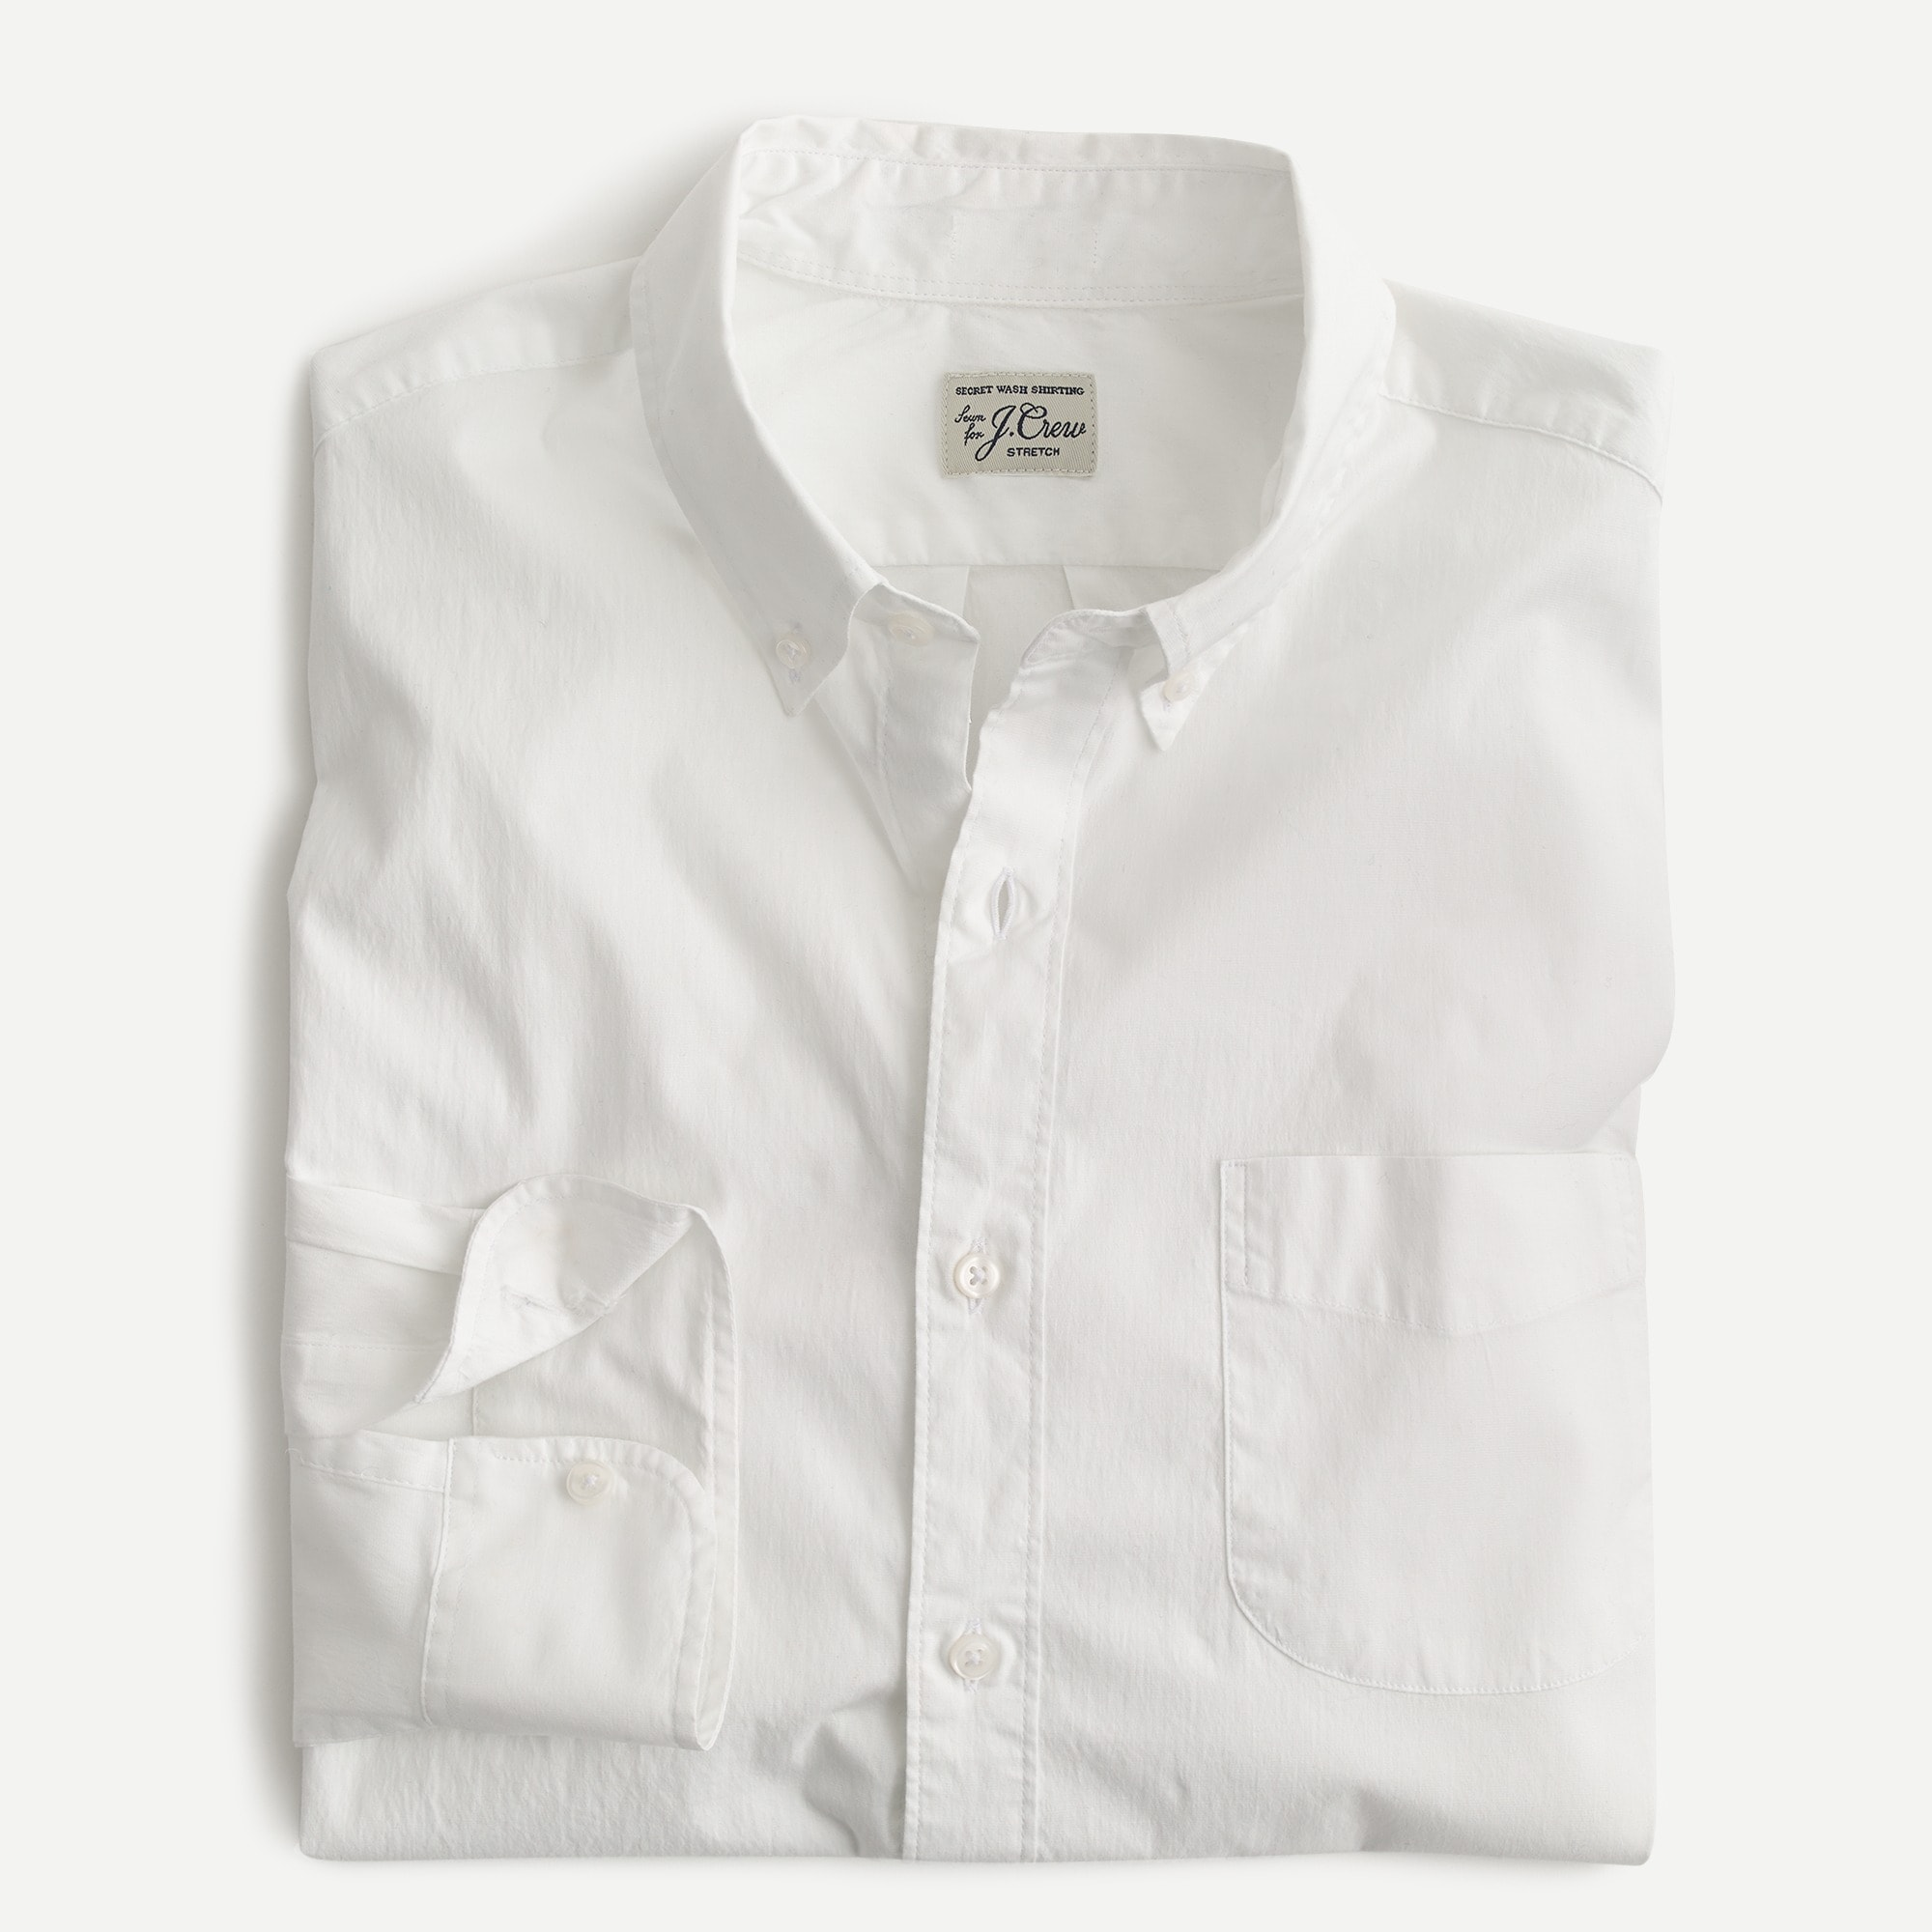 mens Untucked stretch Secret Wash shirt in white poplin